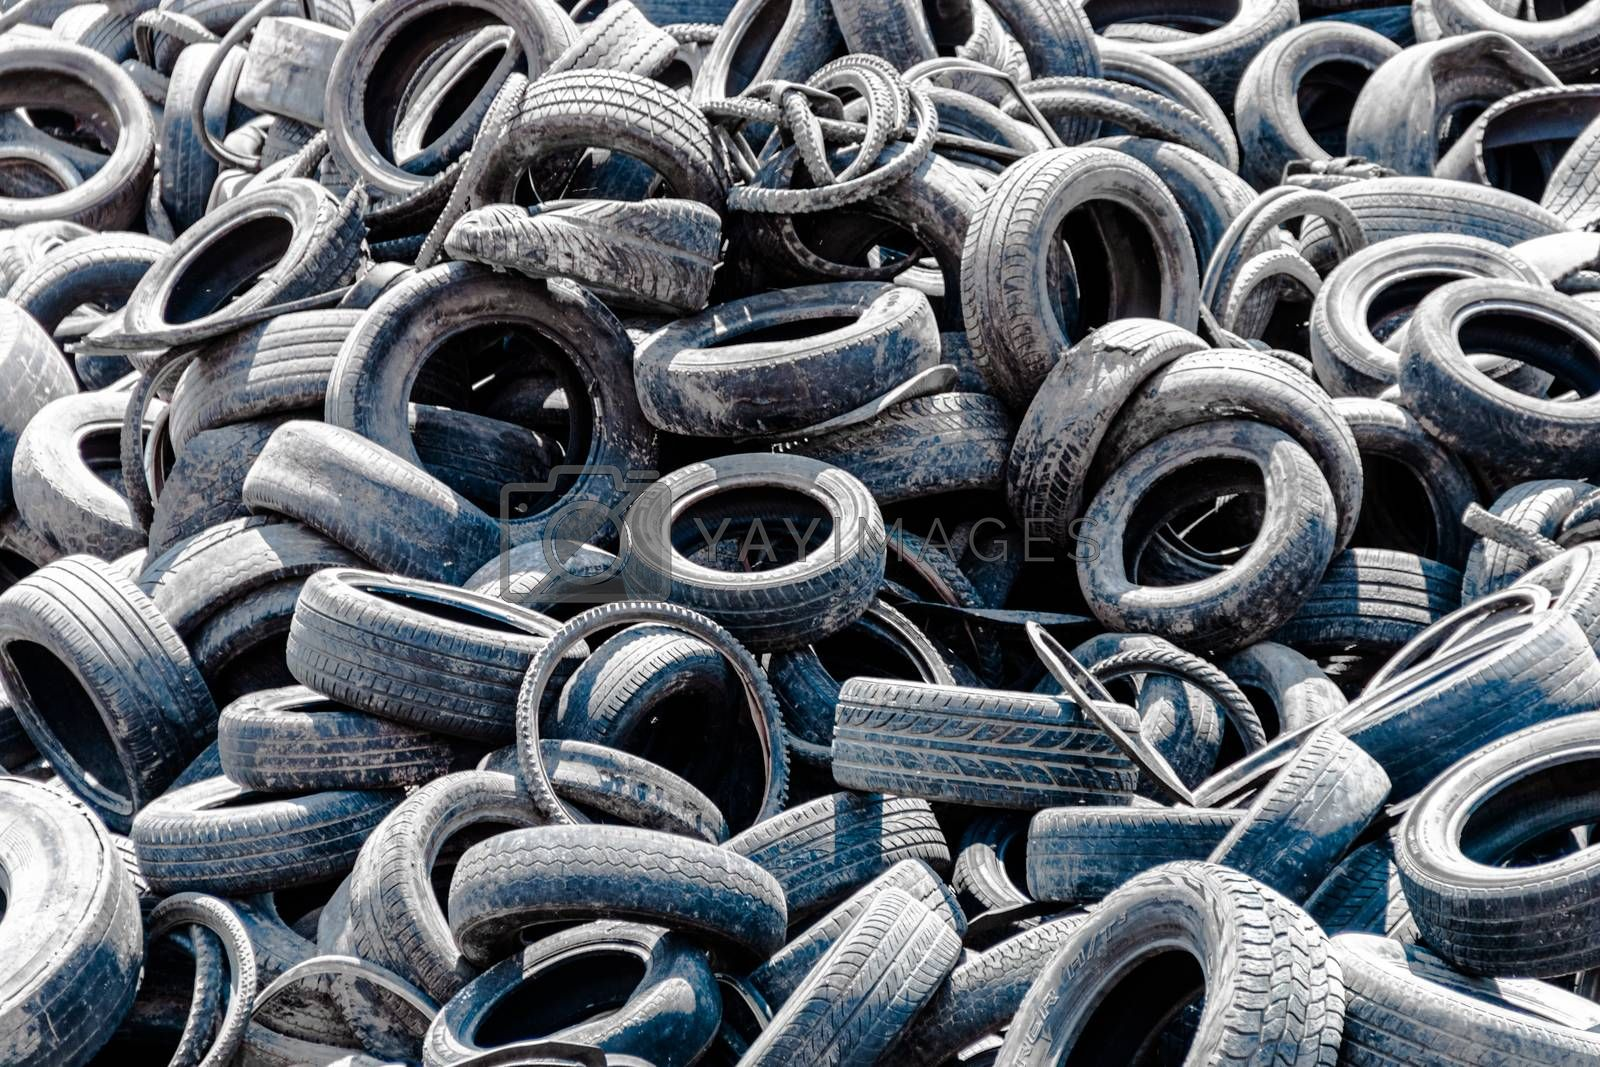 Assorted pile of old and used automotive road tires, showing a variety of tread patterns in a tires shop back yard. No people. Copy space